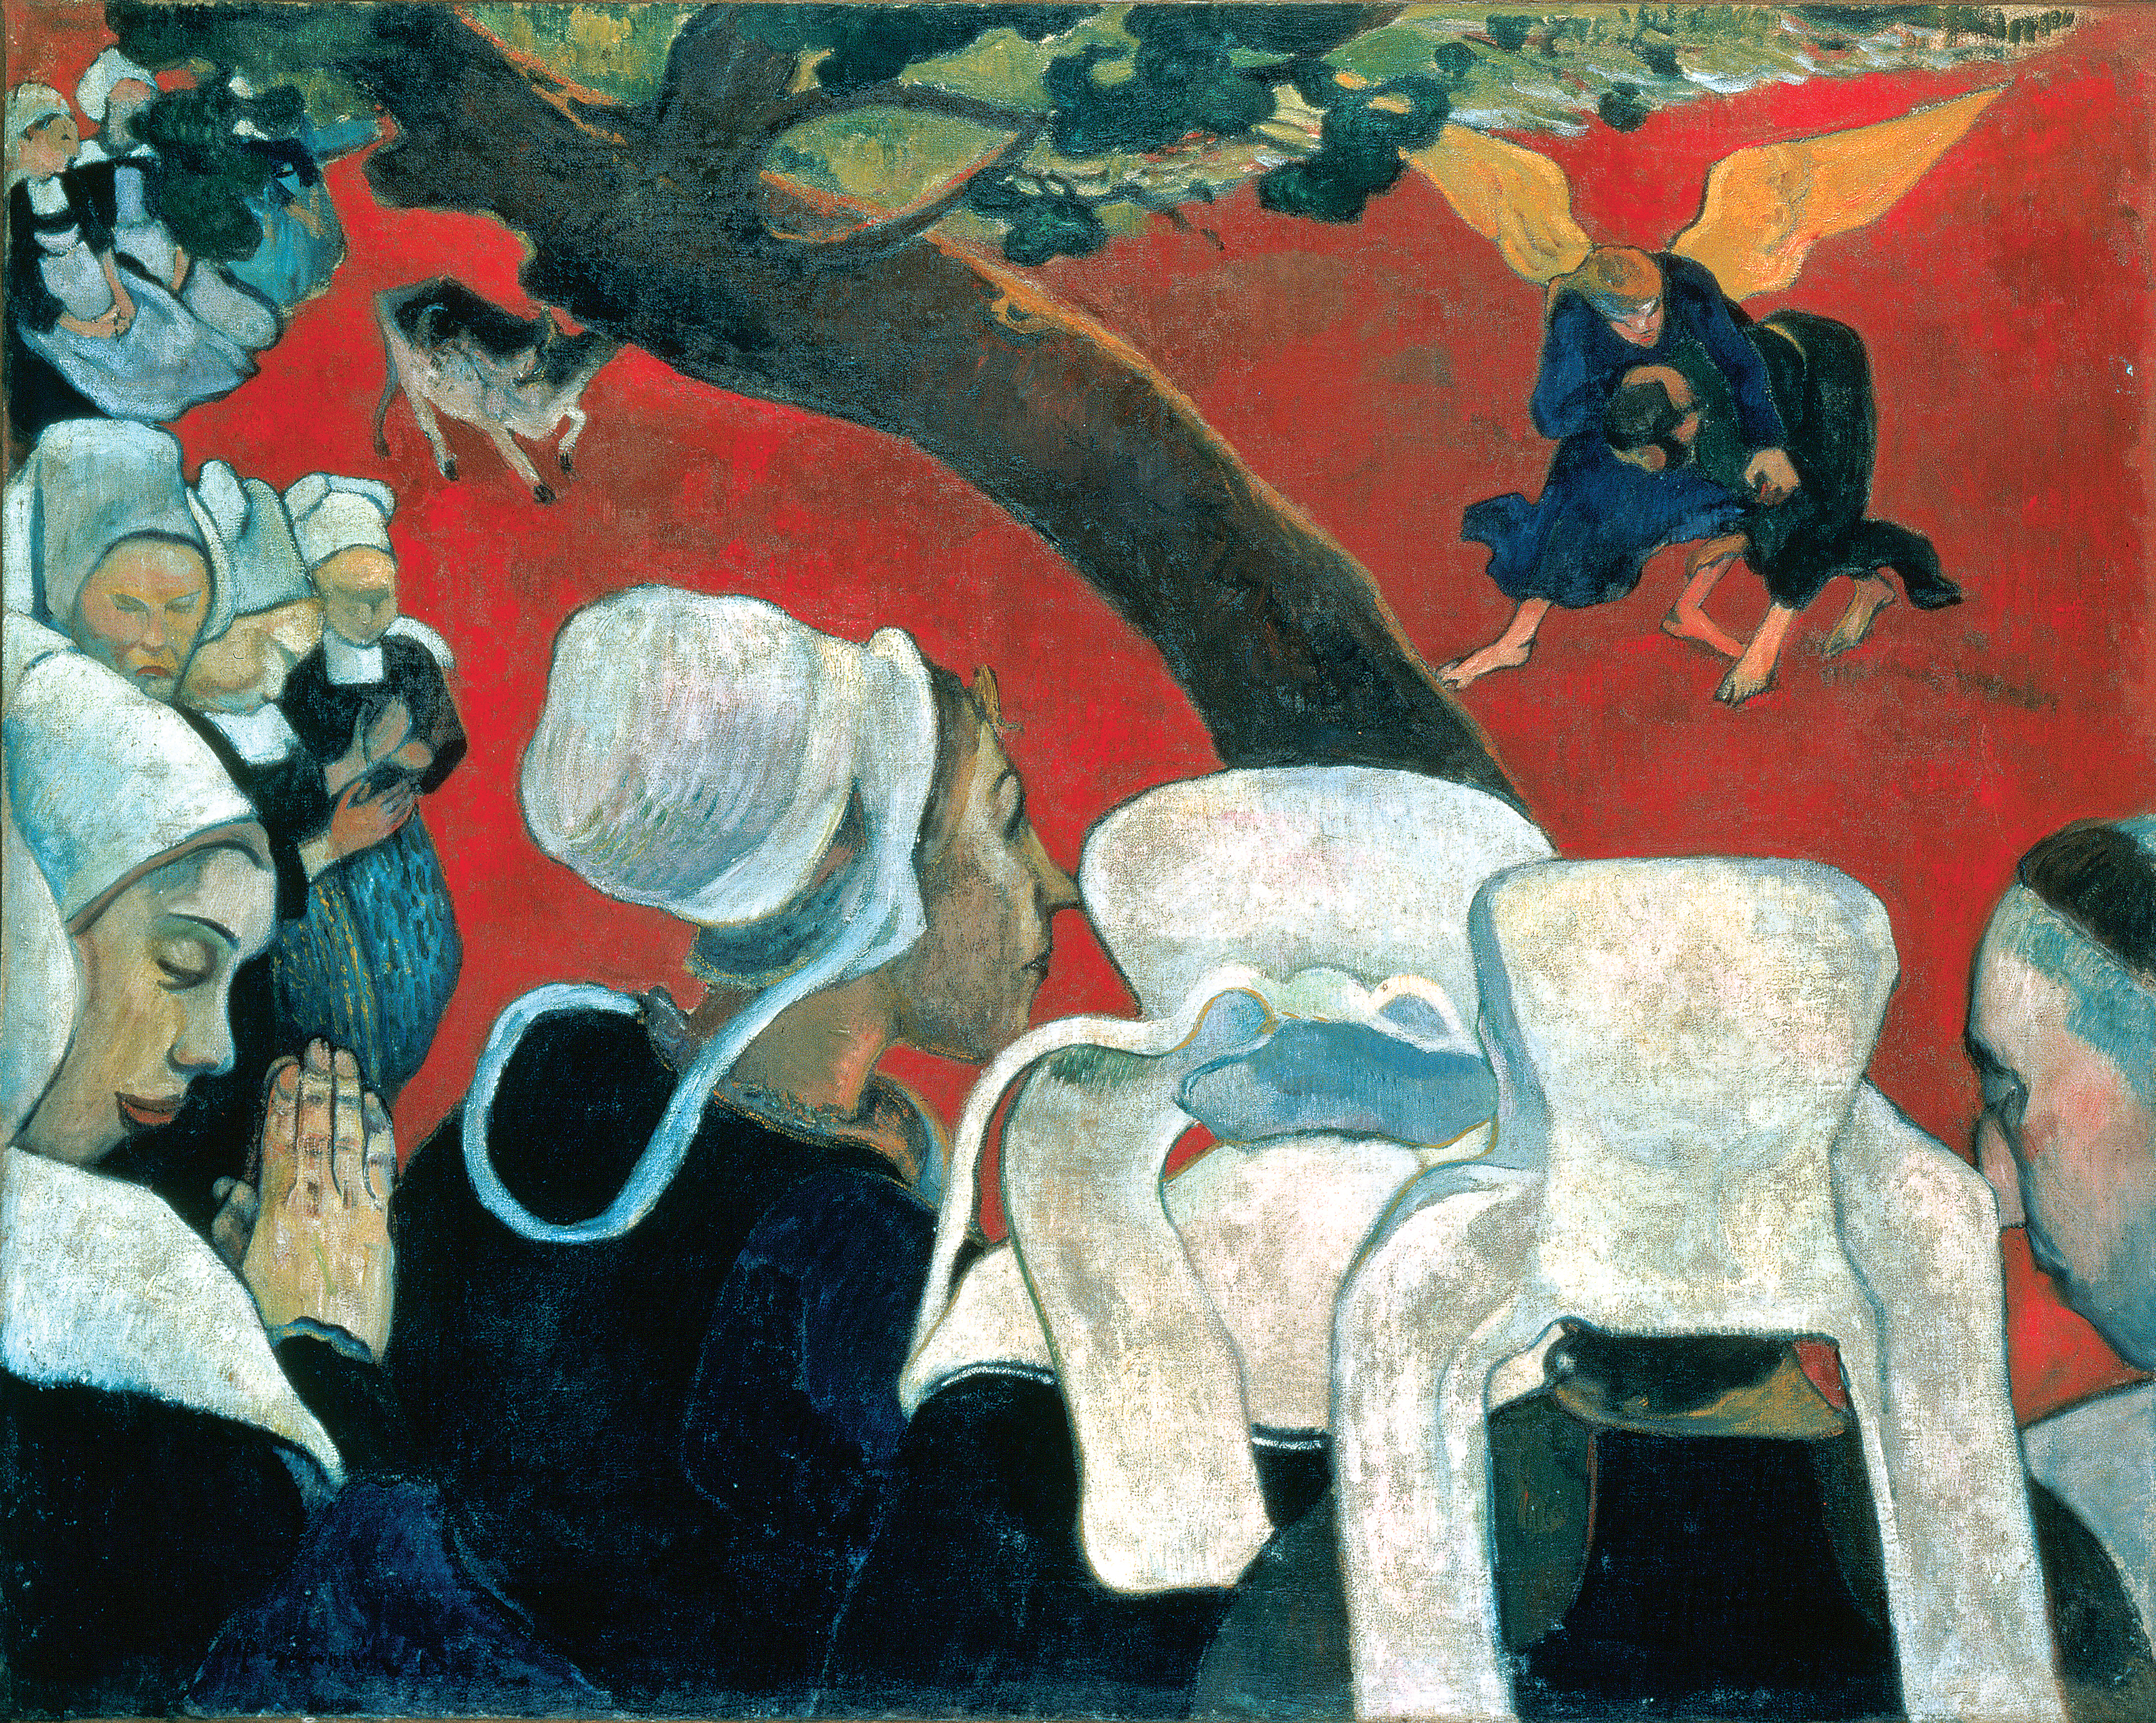 Paul Gauguin, Vision after the Sermon, 1888, oil on canvas, 72.2 x 91 cm (National Galleries of Scotland, Edinburgh)